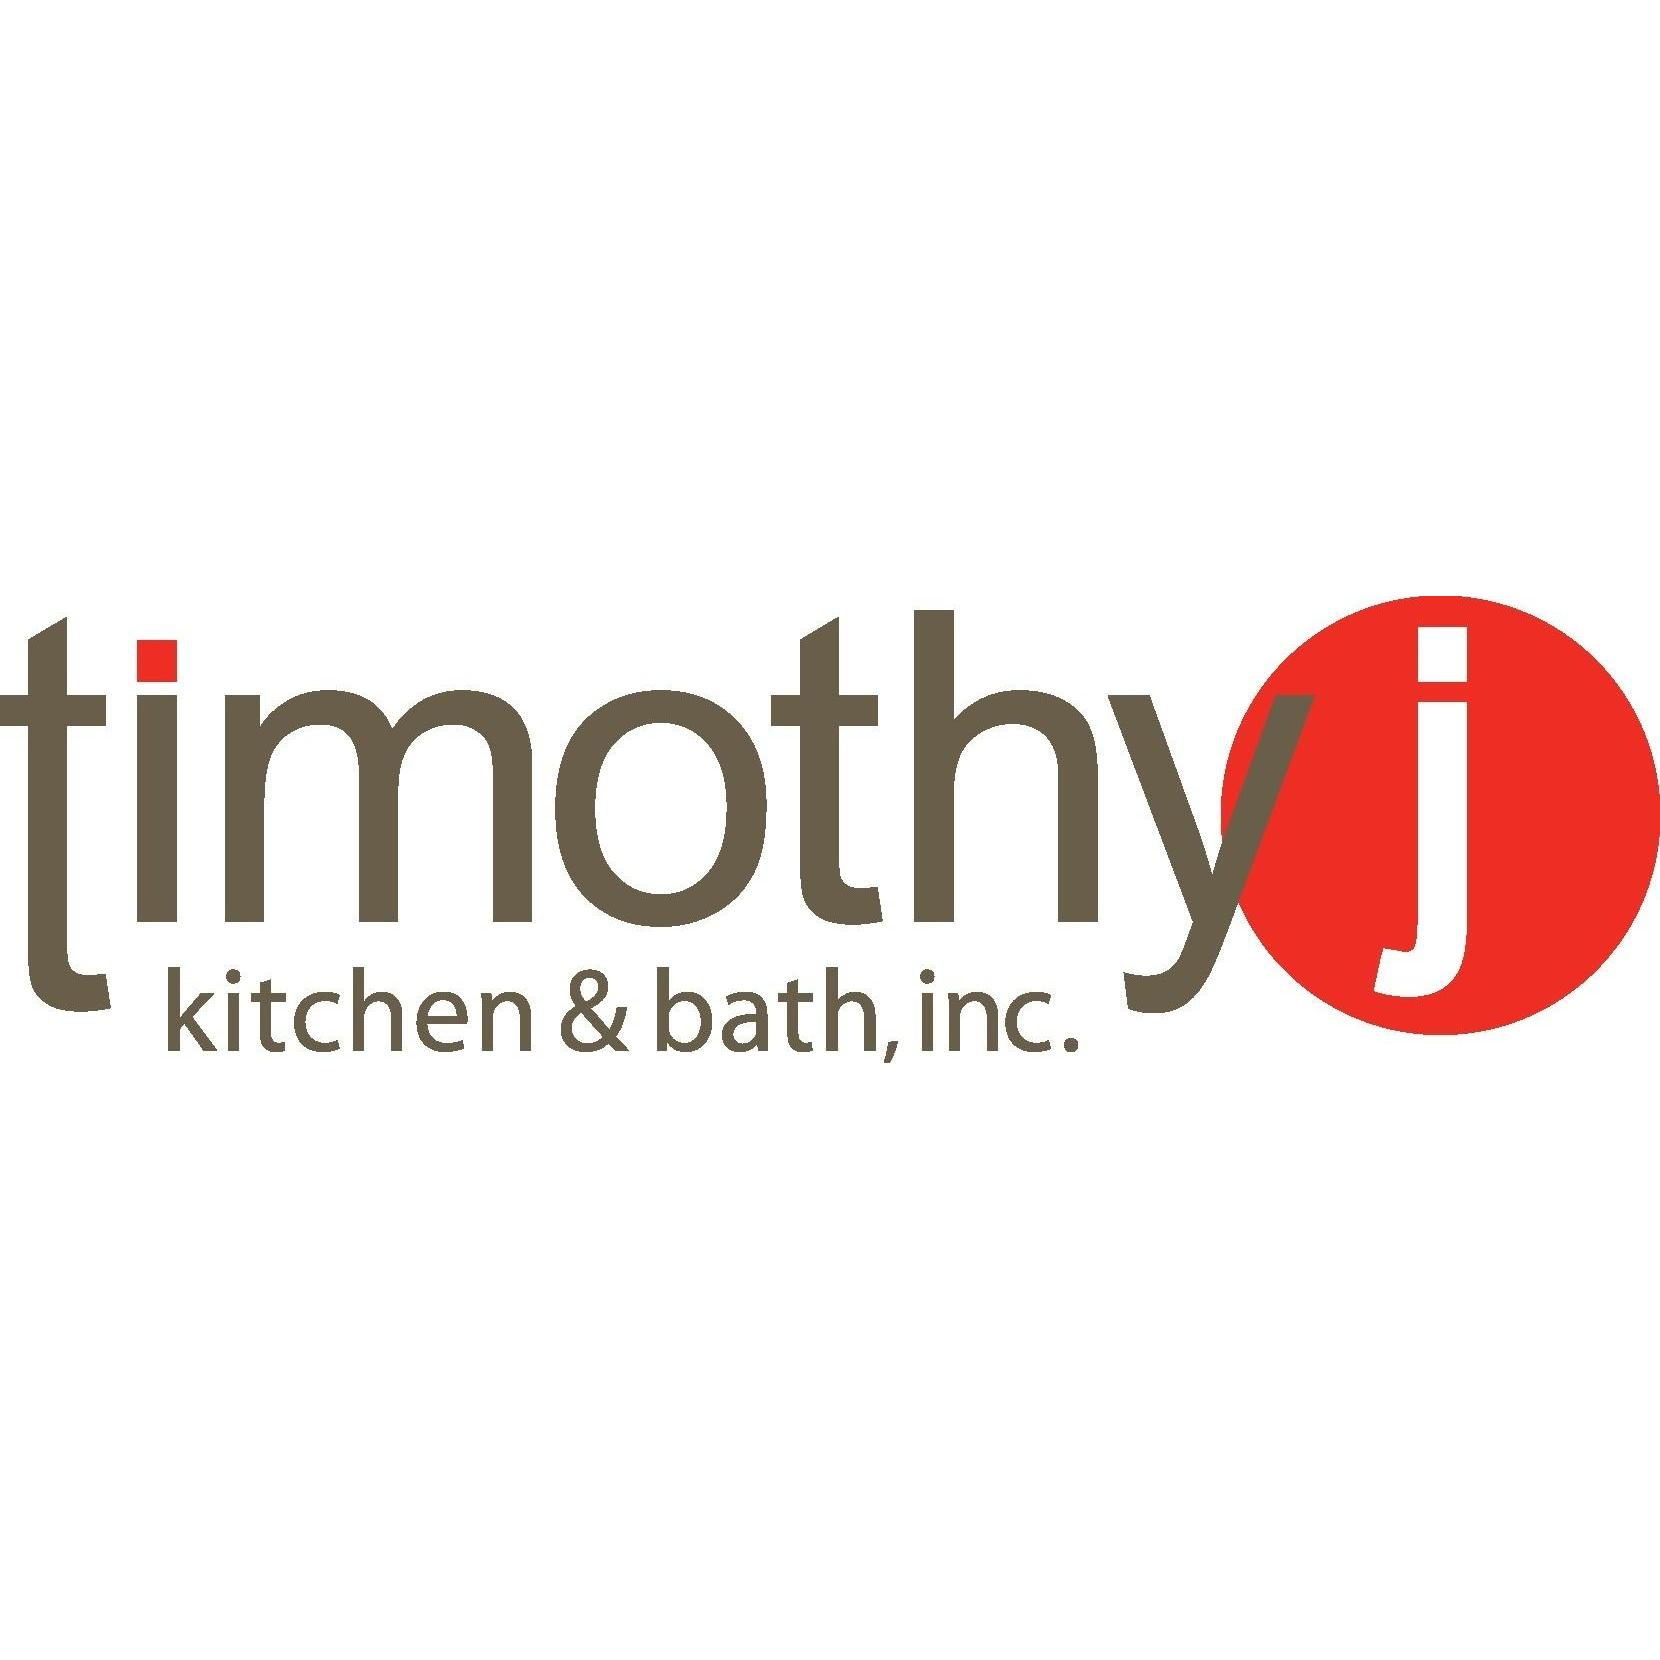 timothyj kitchen  and  bath, inc.